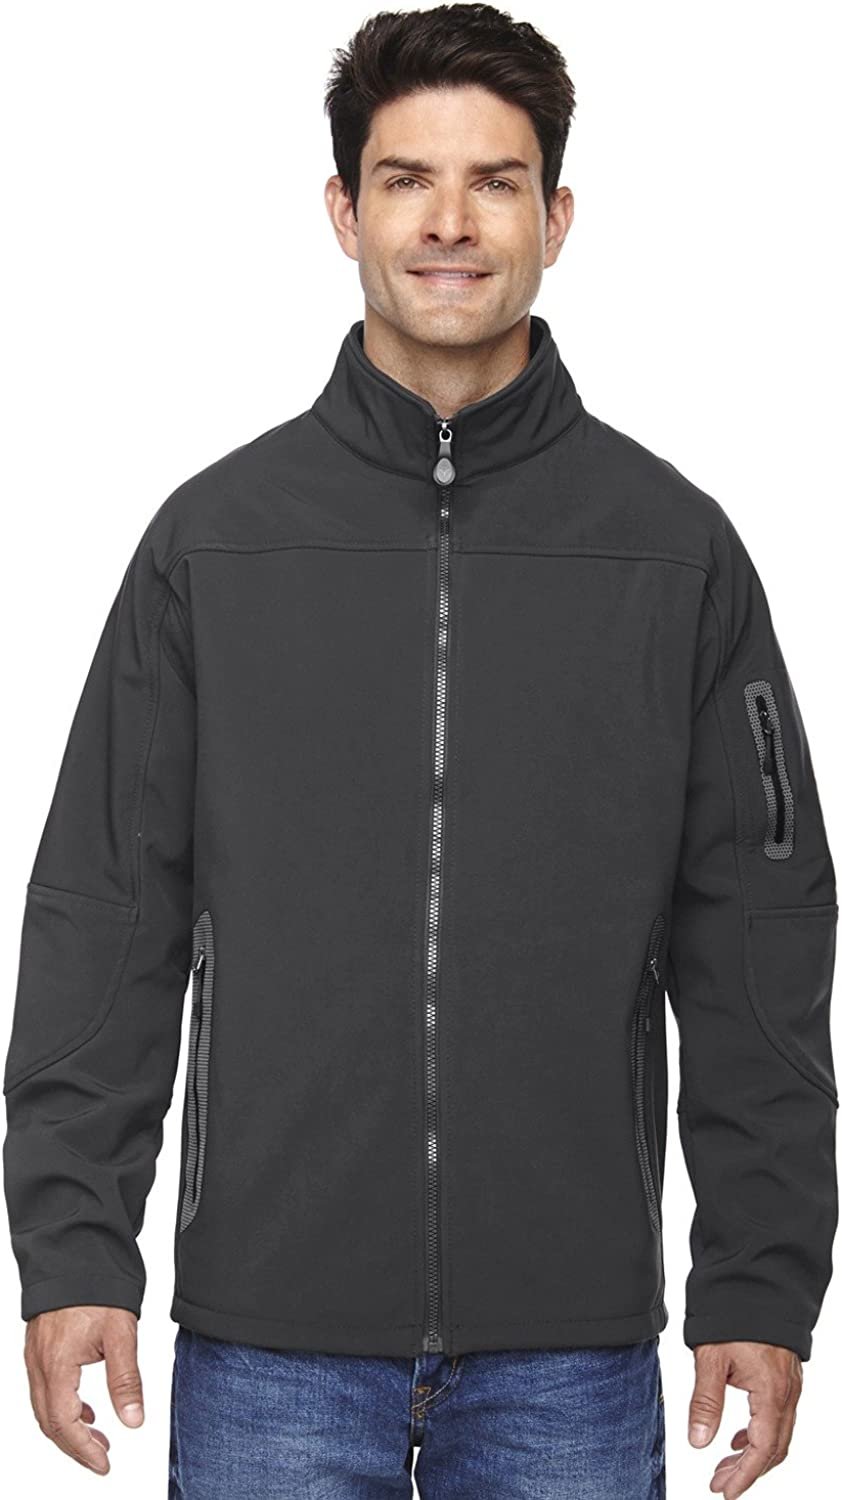 North End Mens Soft Shell Technical Jacket (88138) -GRAPHITE 156 -5XL